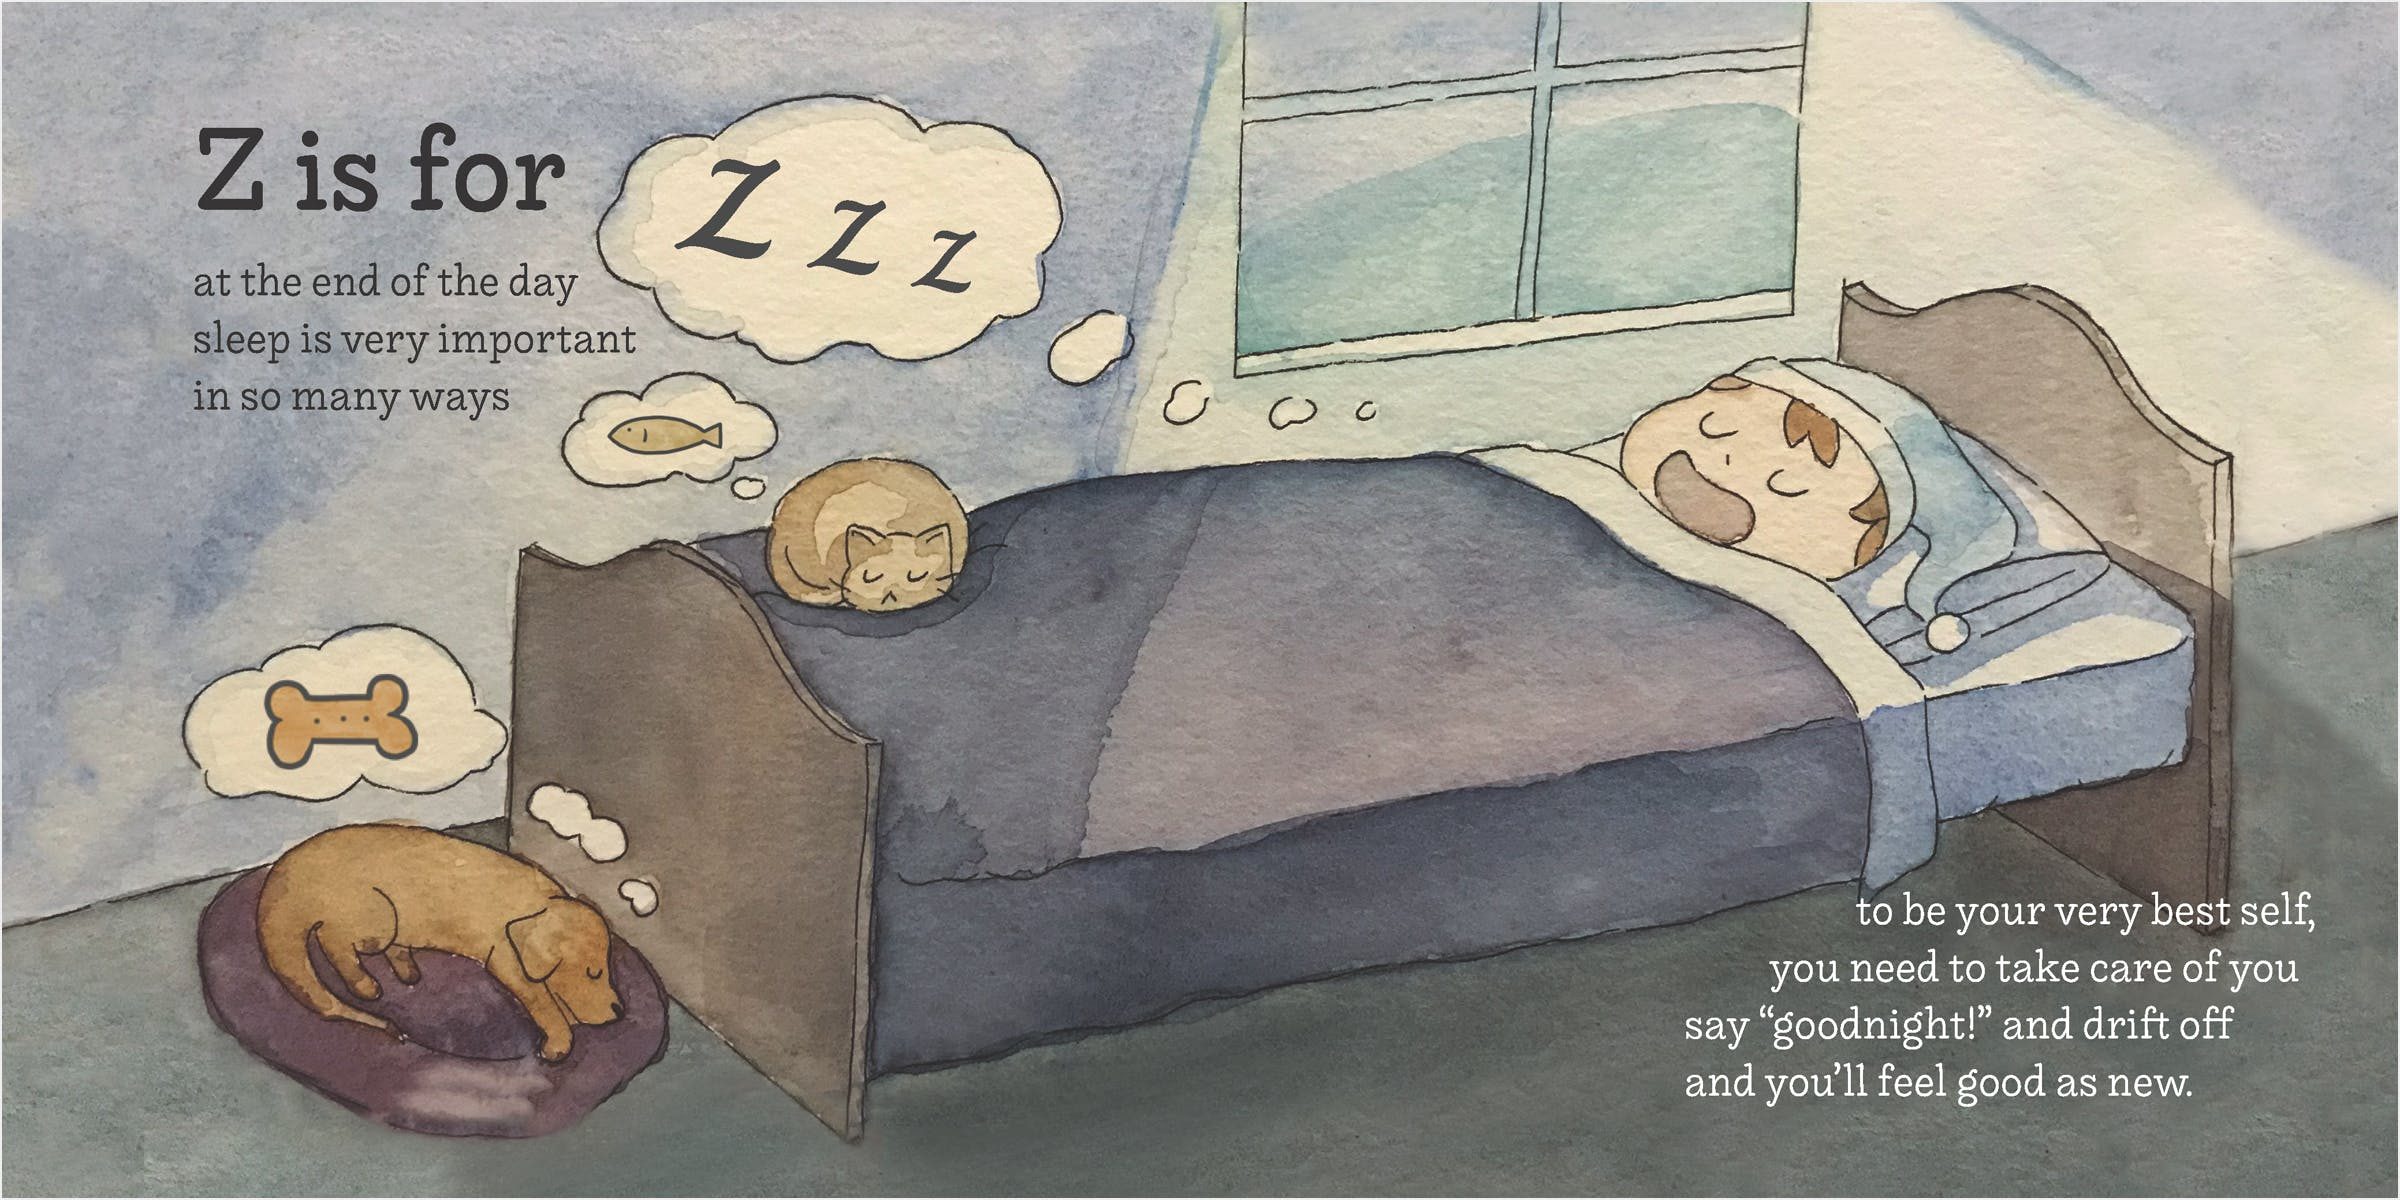 A young boy sleeps in a bed